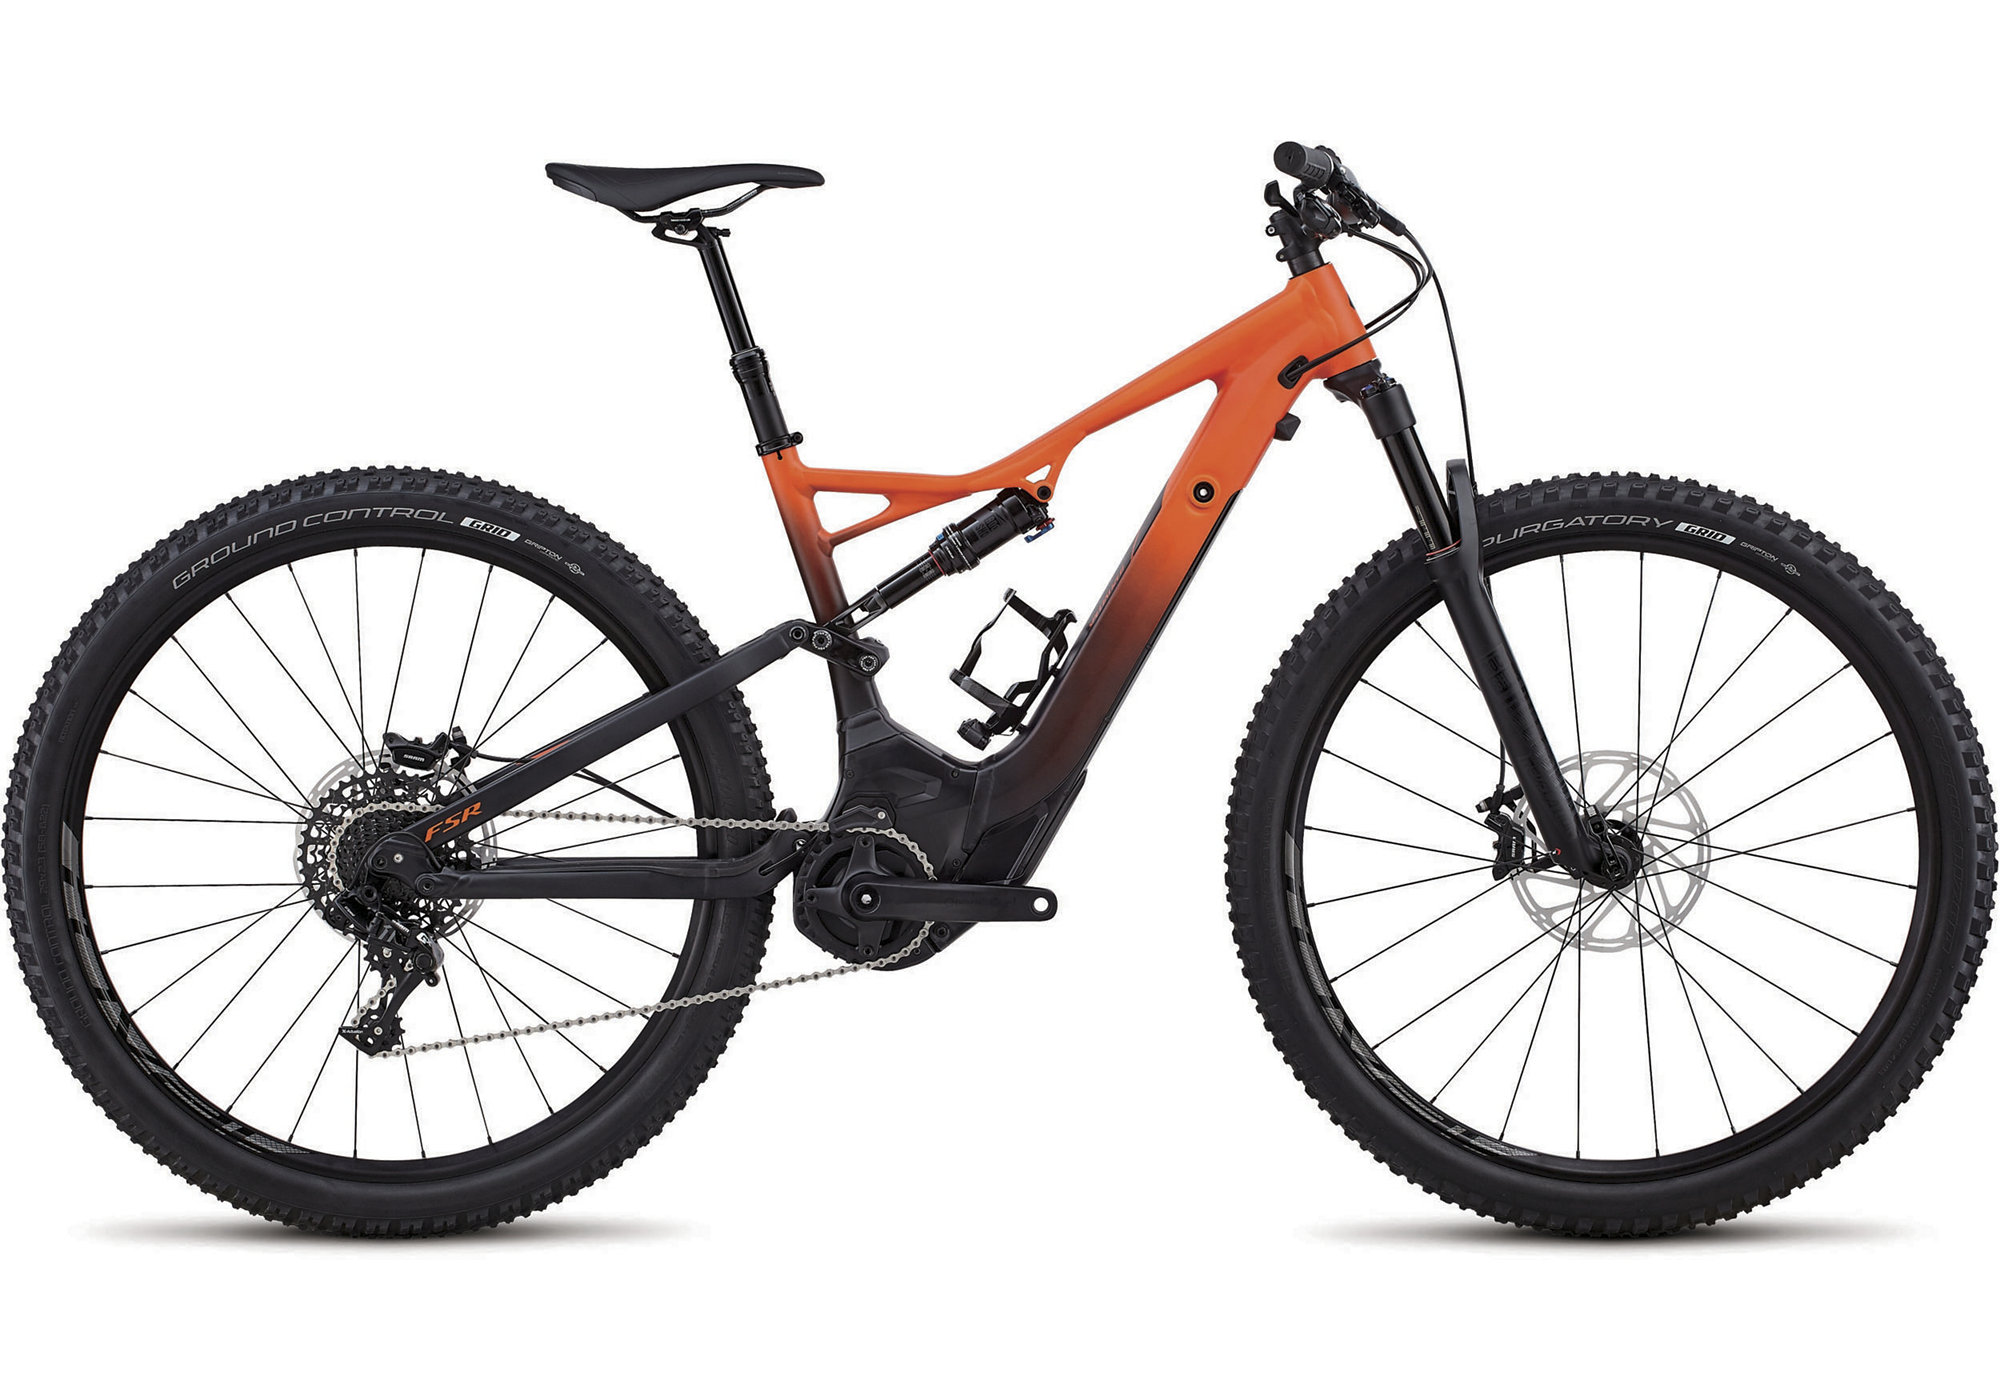 TURBO LEVO FSR SHORT TRAVEL COMP 29 naranja